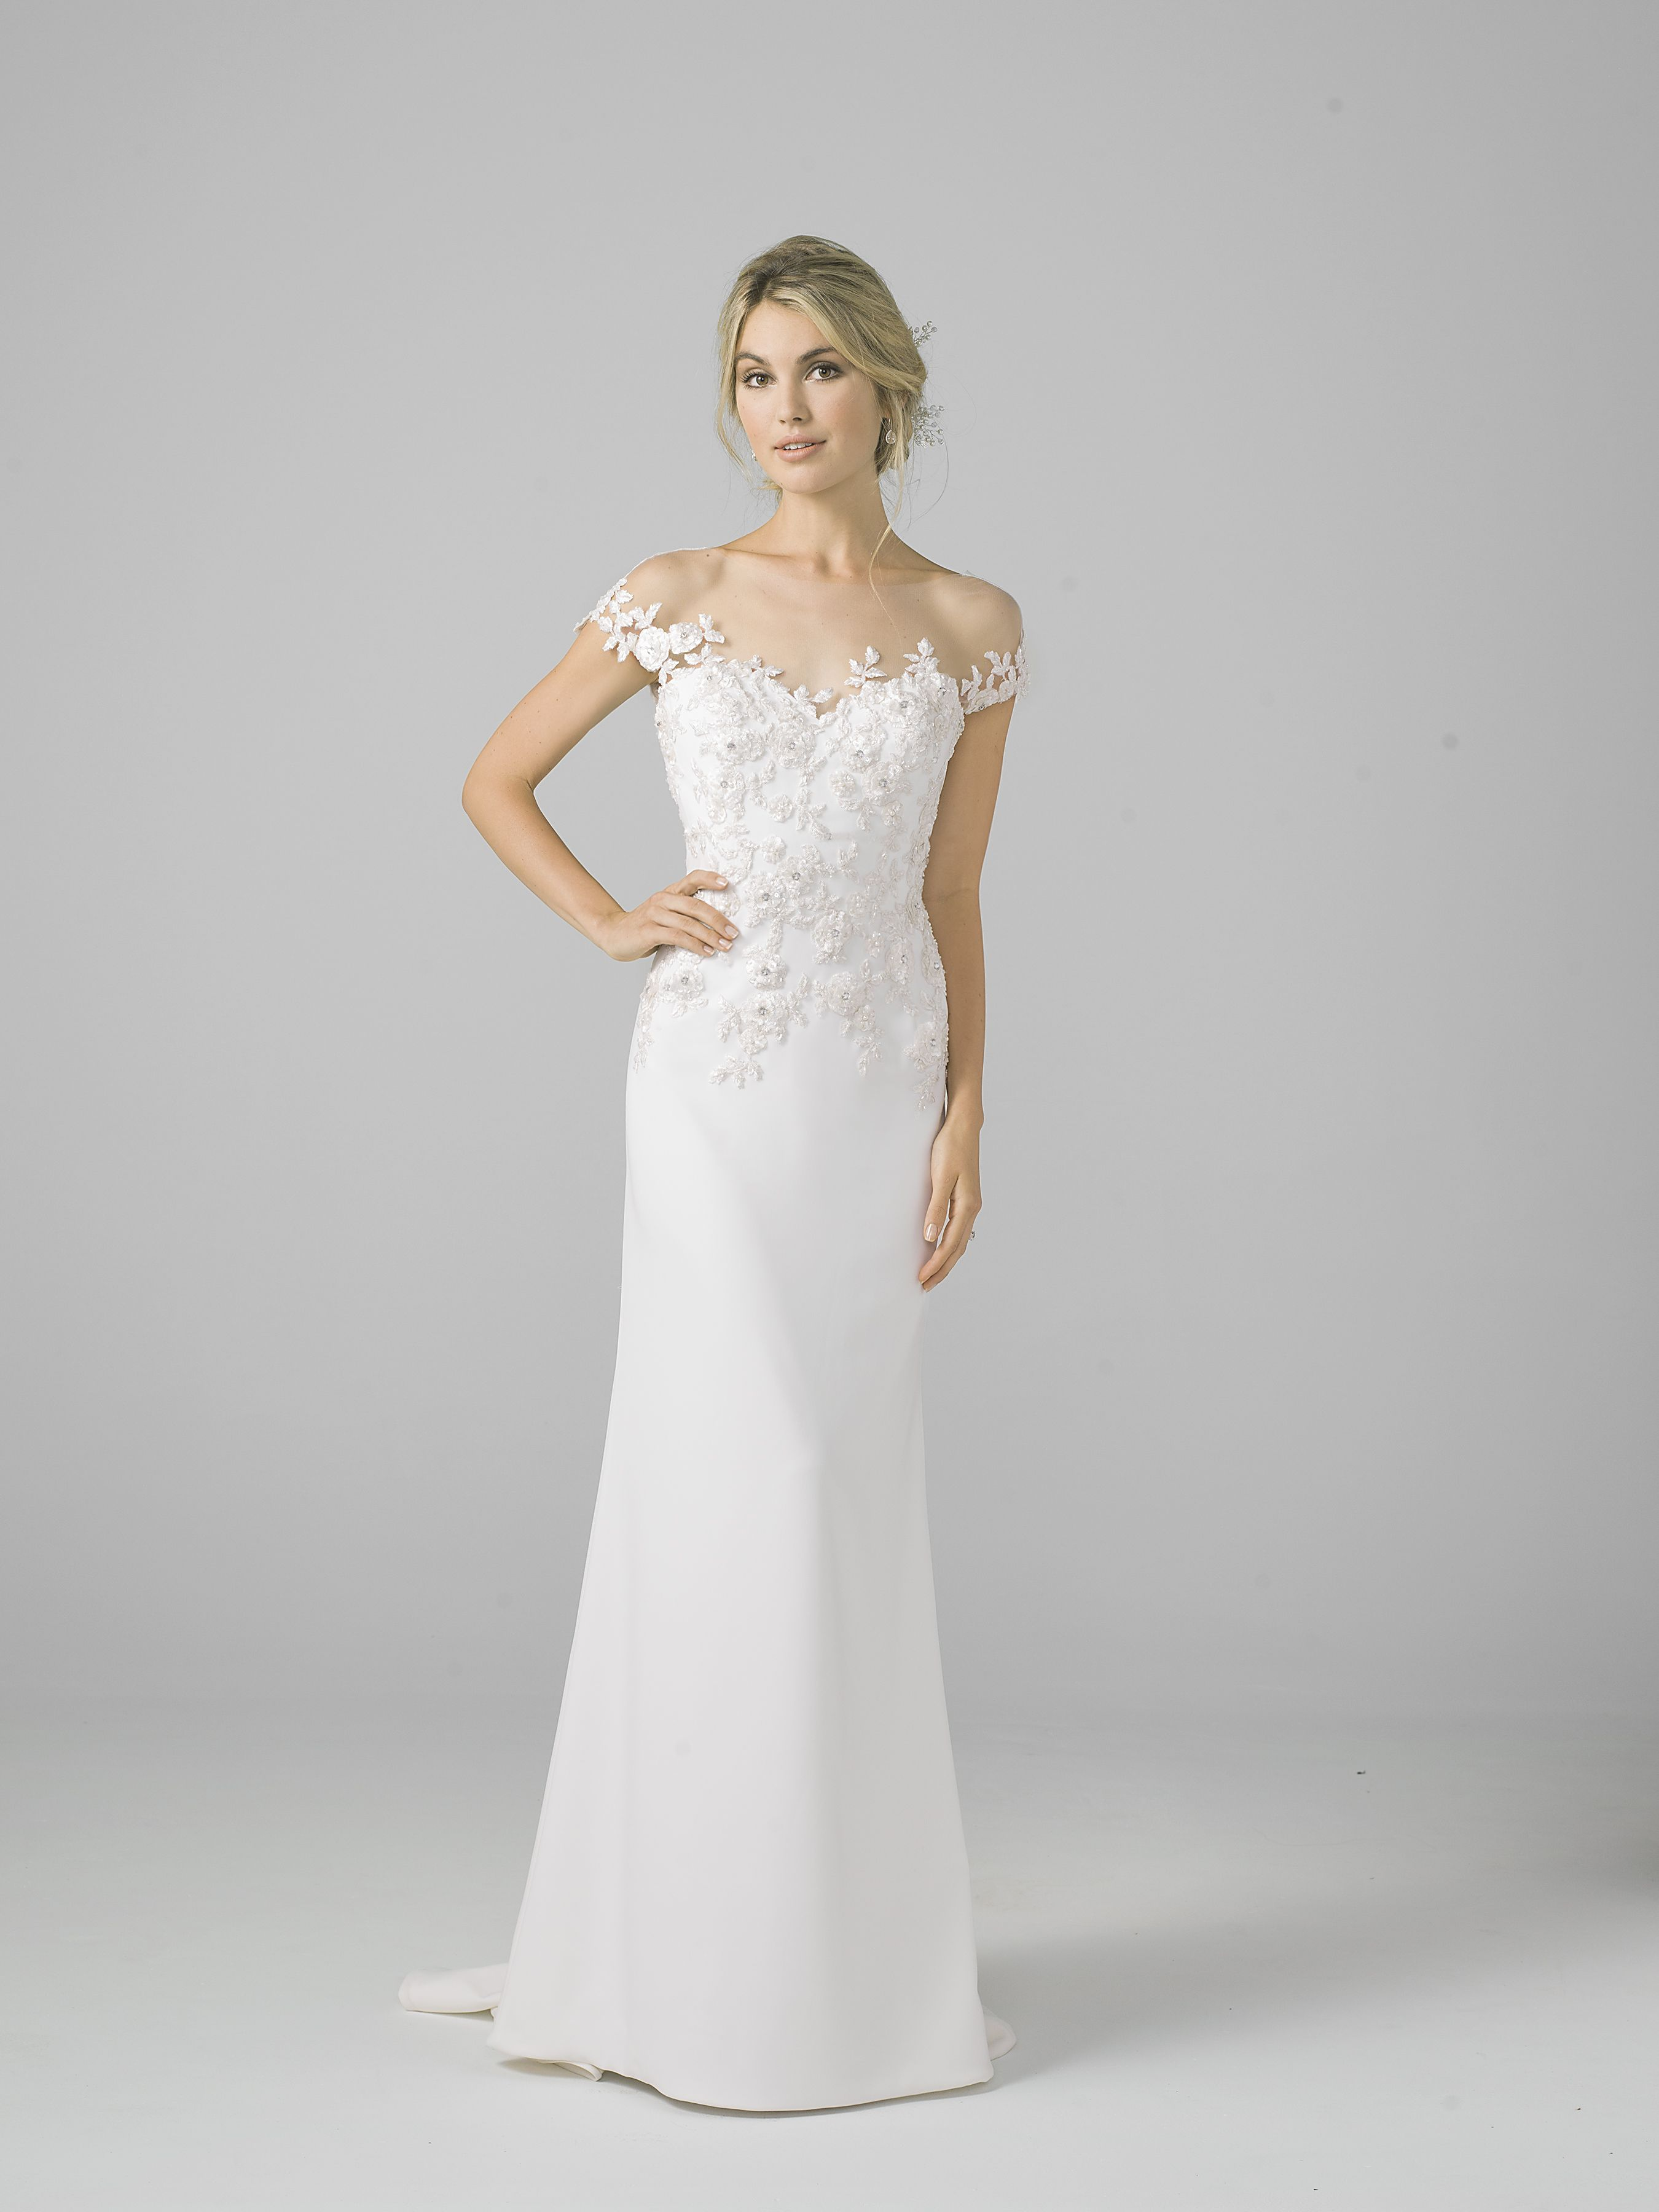 Azul by Lian Carlo New Bridal Gown available at Isabel O\'neil Bridal ...